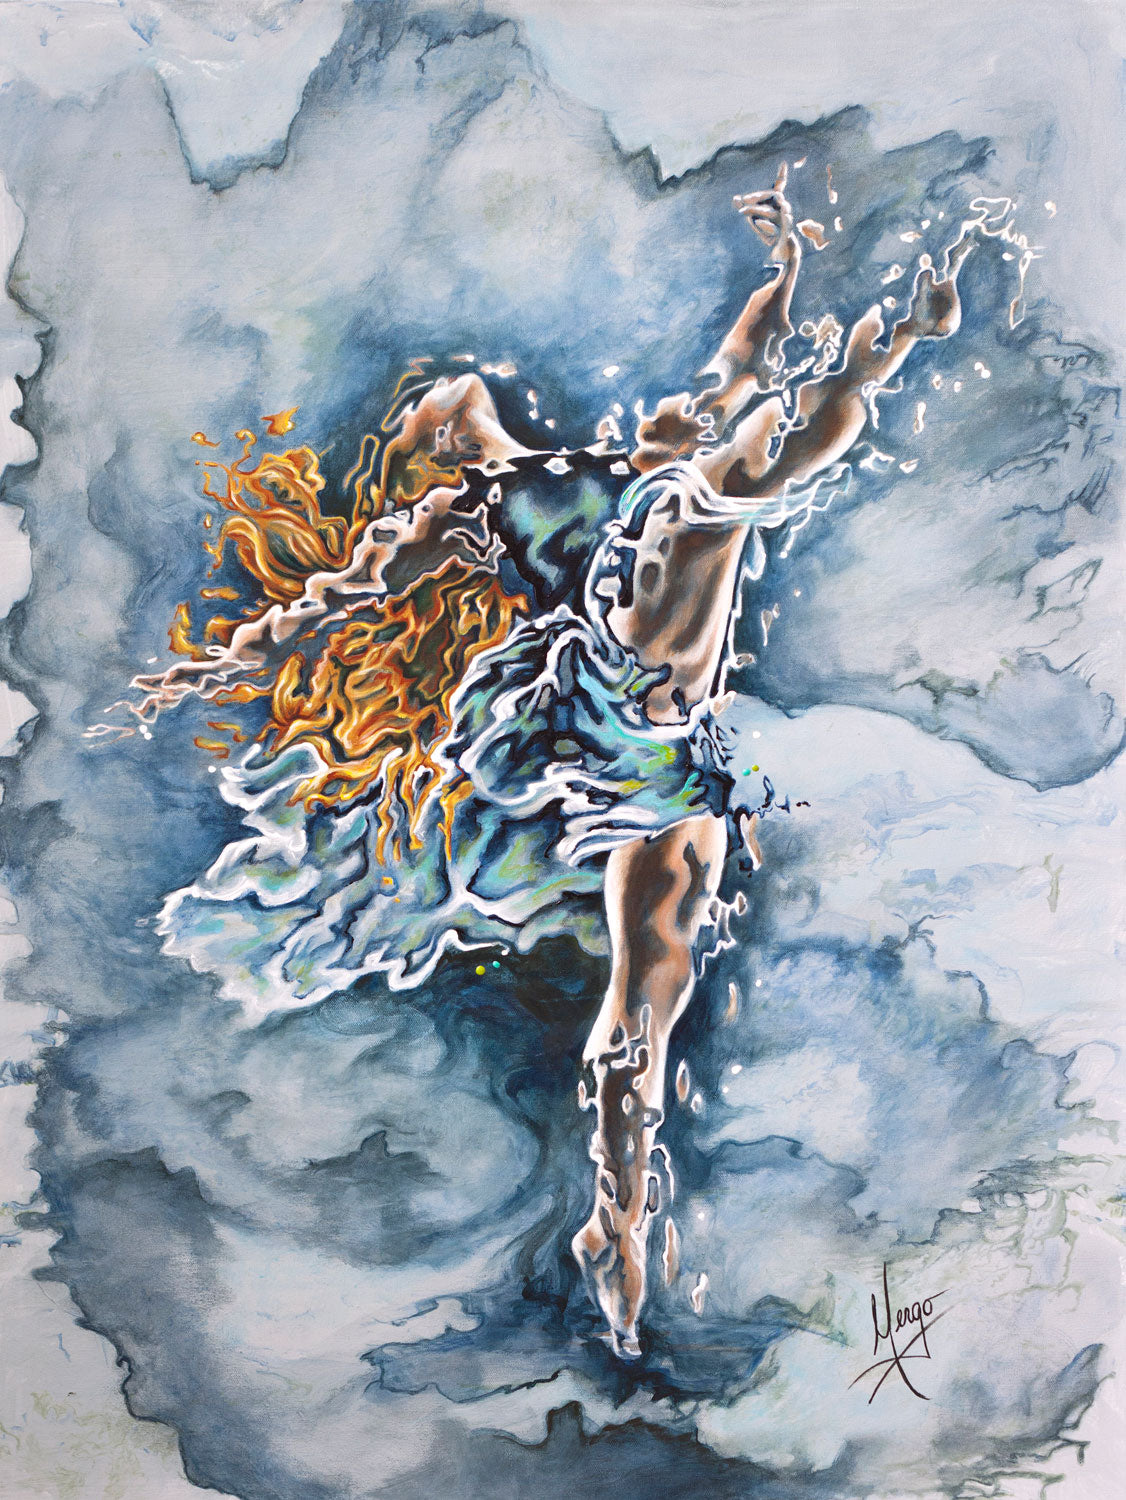 Abstract figurative painting of a ballerina in blue